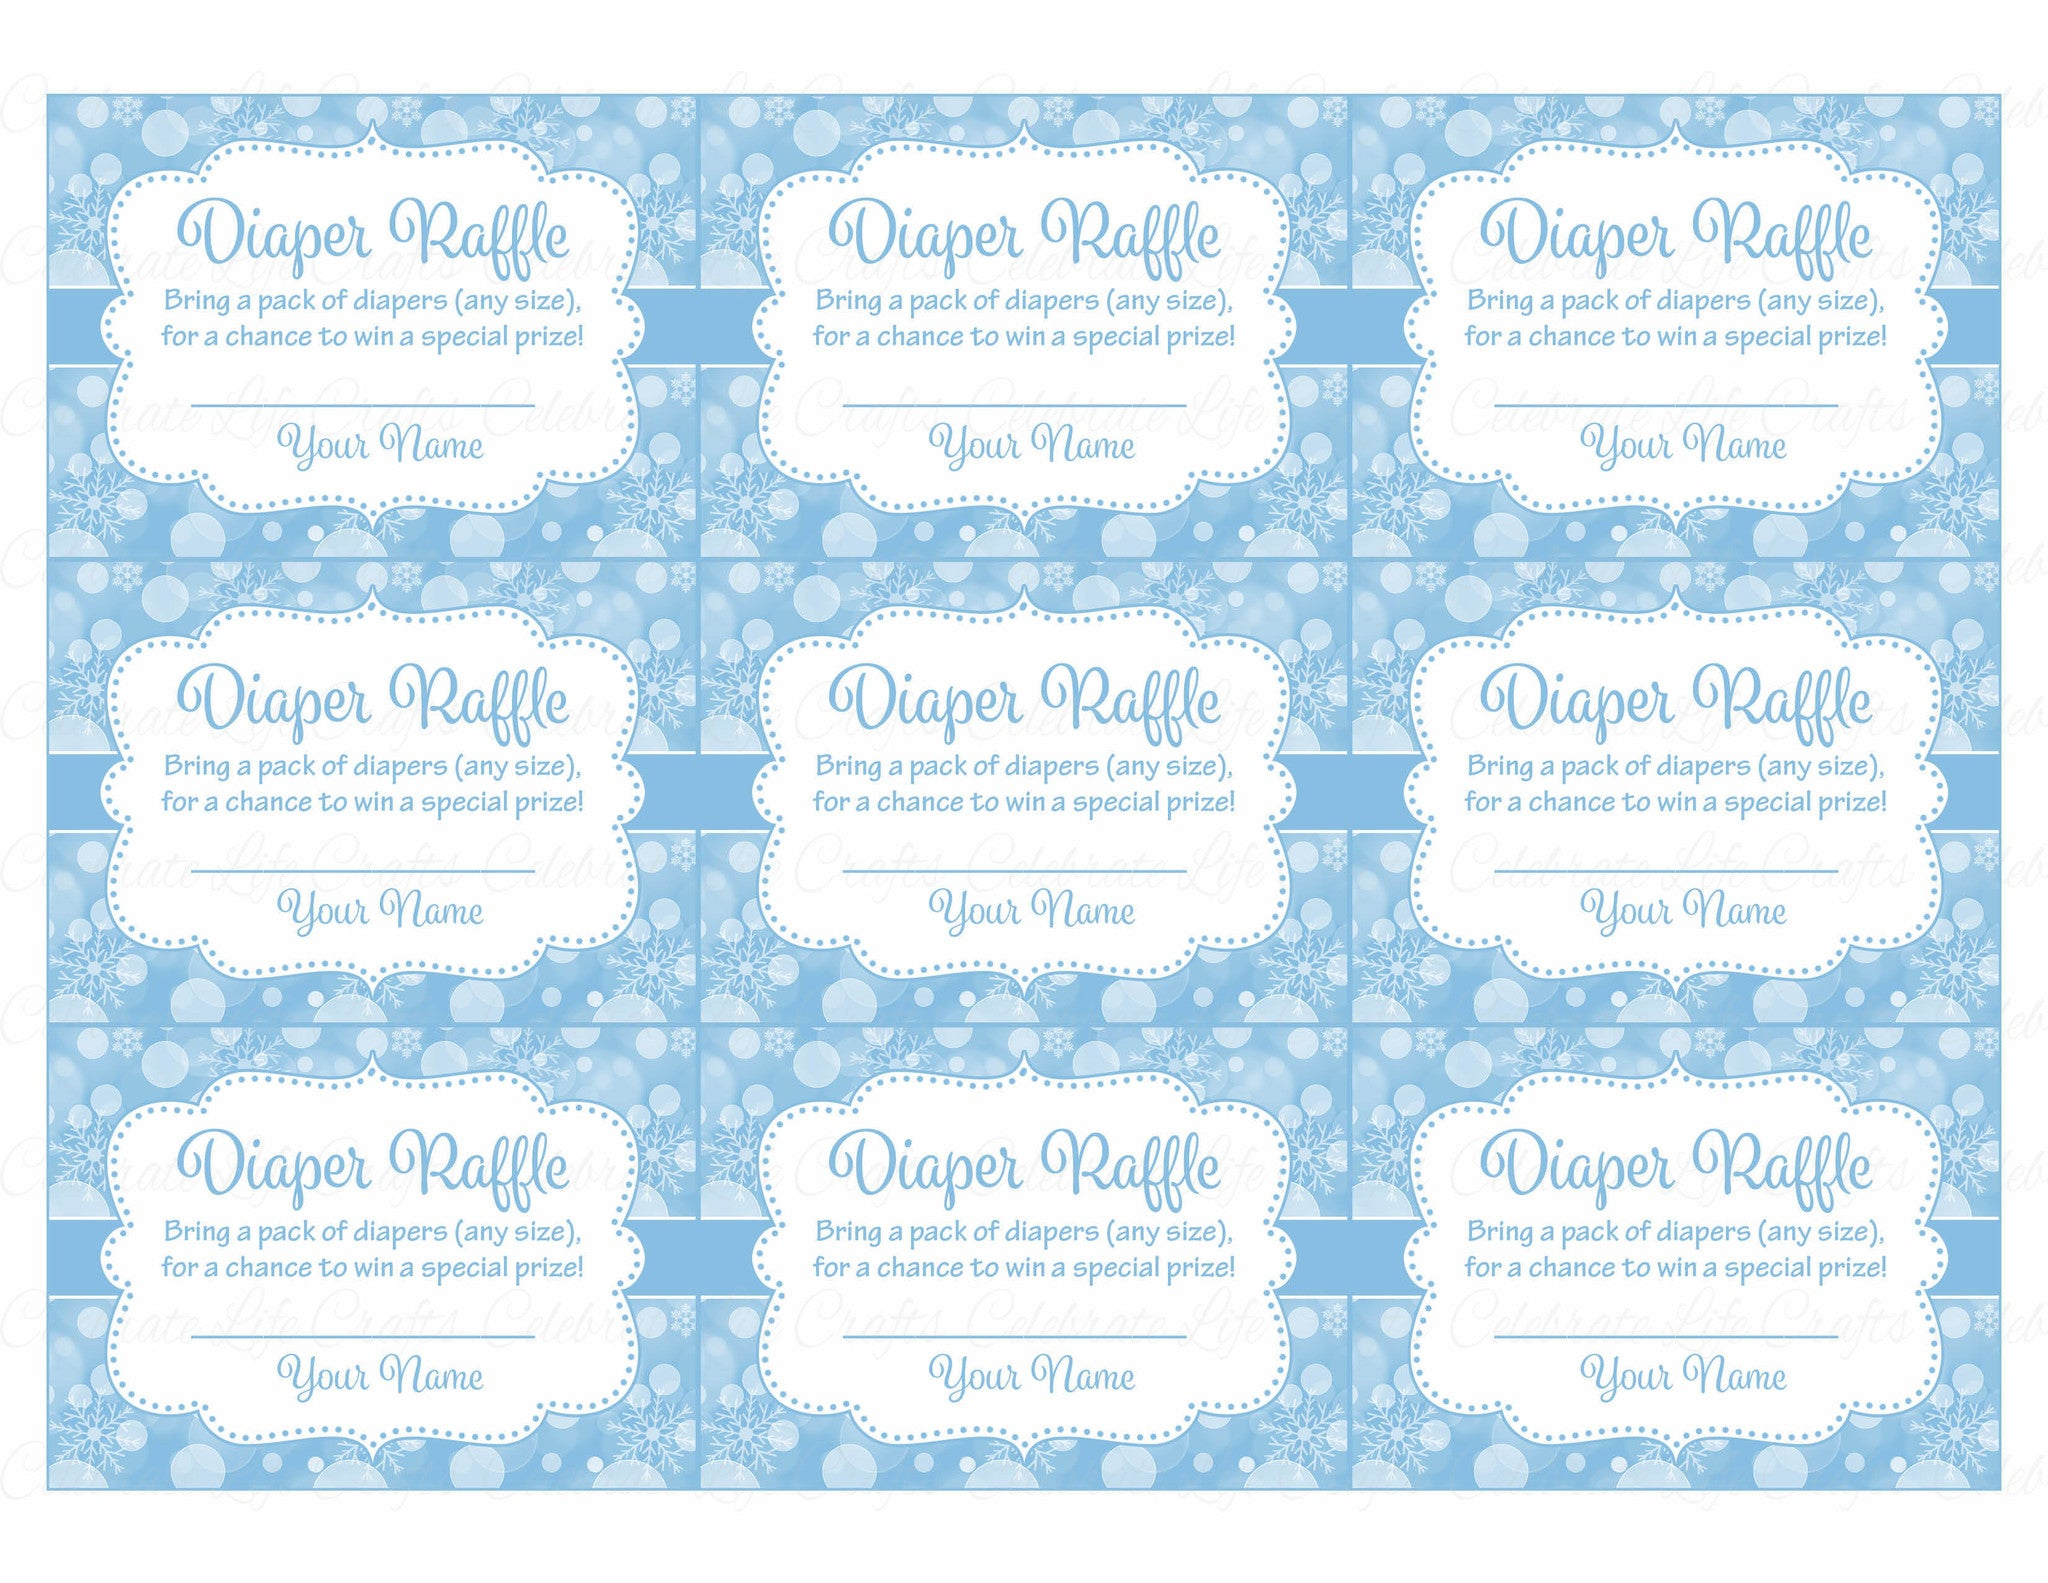 picture about Printable Diaper called Diaper Raffle Tickets - Printable Down load - Blue Bokeh Wintertime Kid Shower Invitation Inserts - B22002